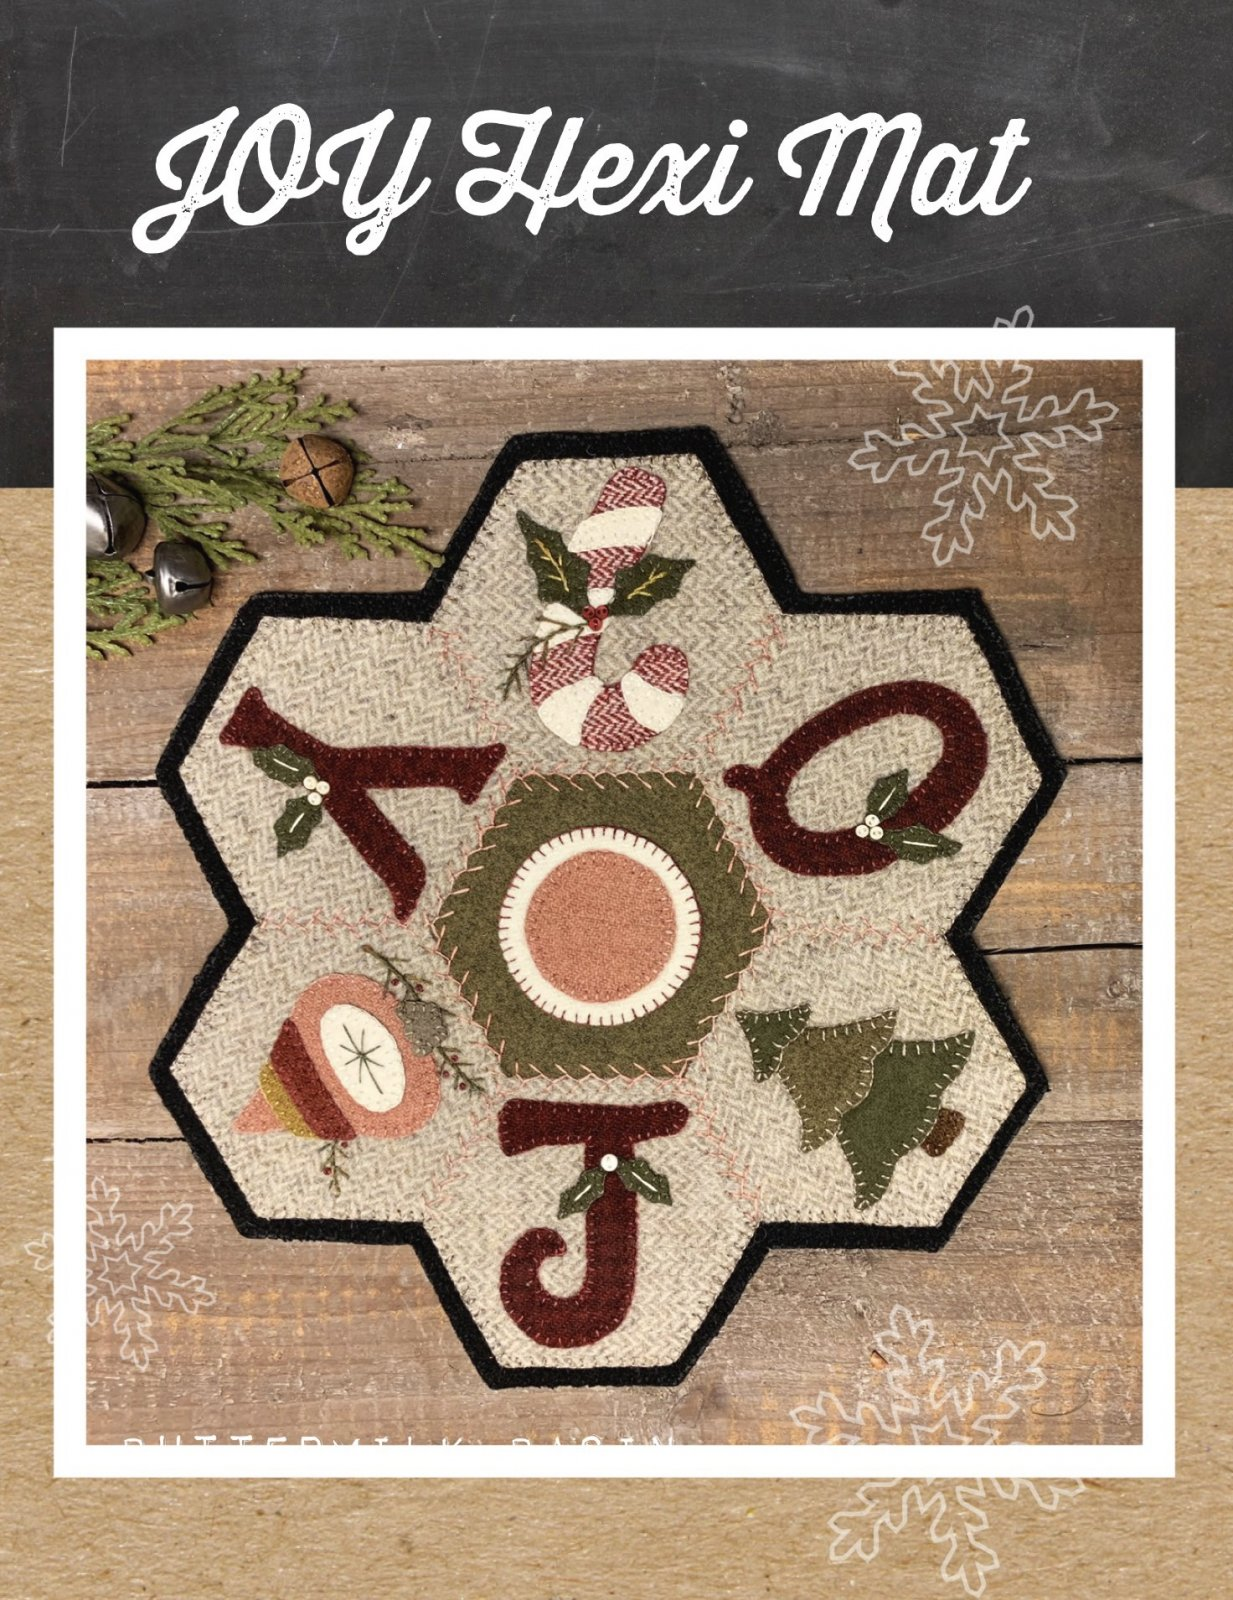 JOY Hexi Mat * Pattern & Kit